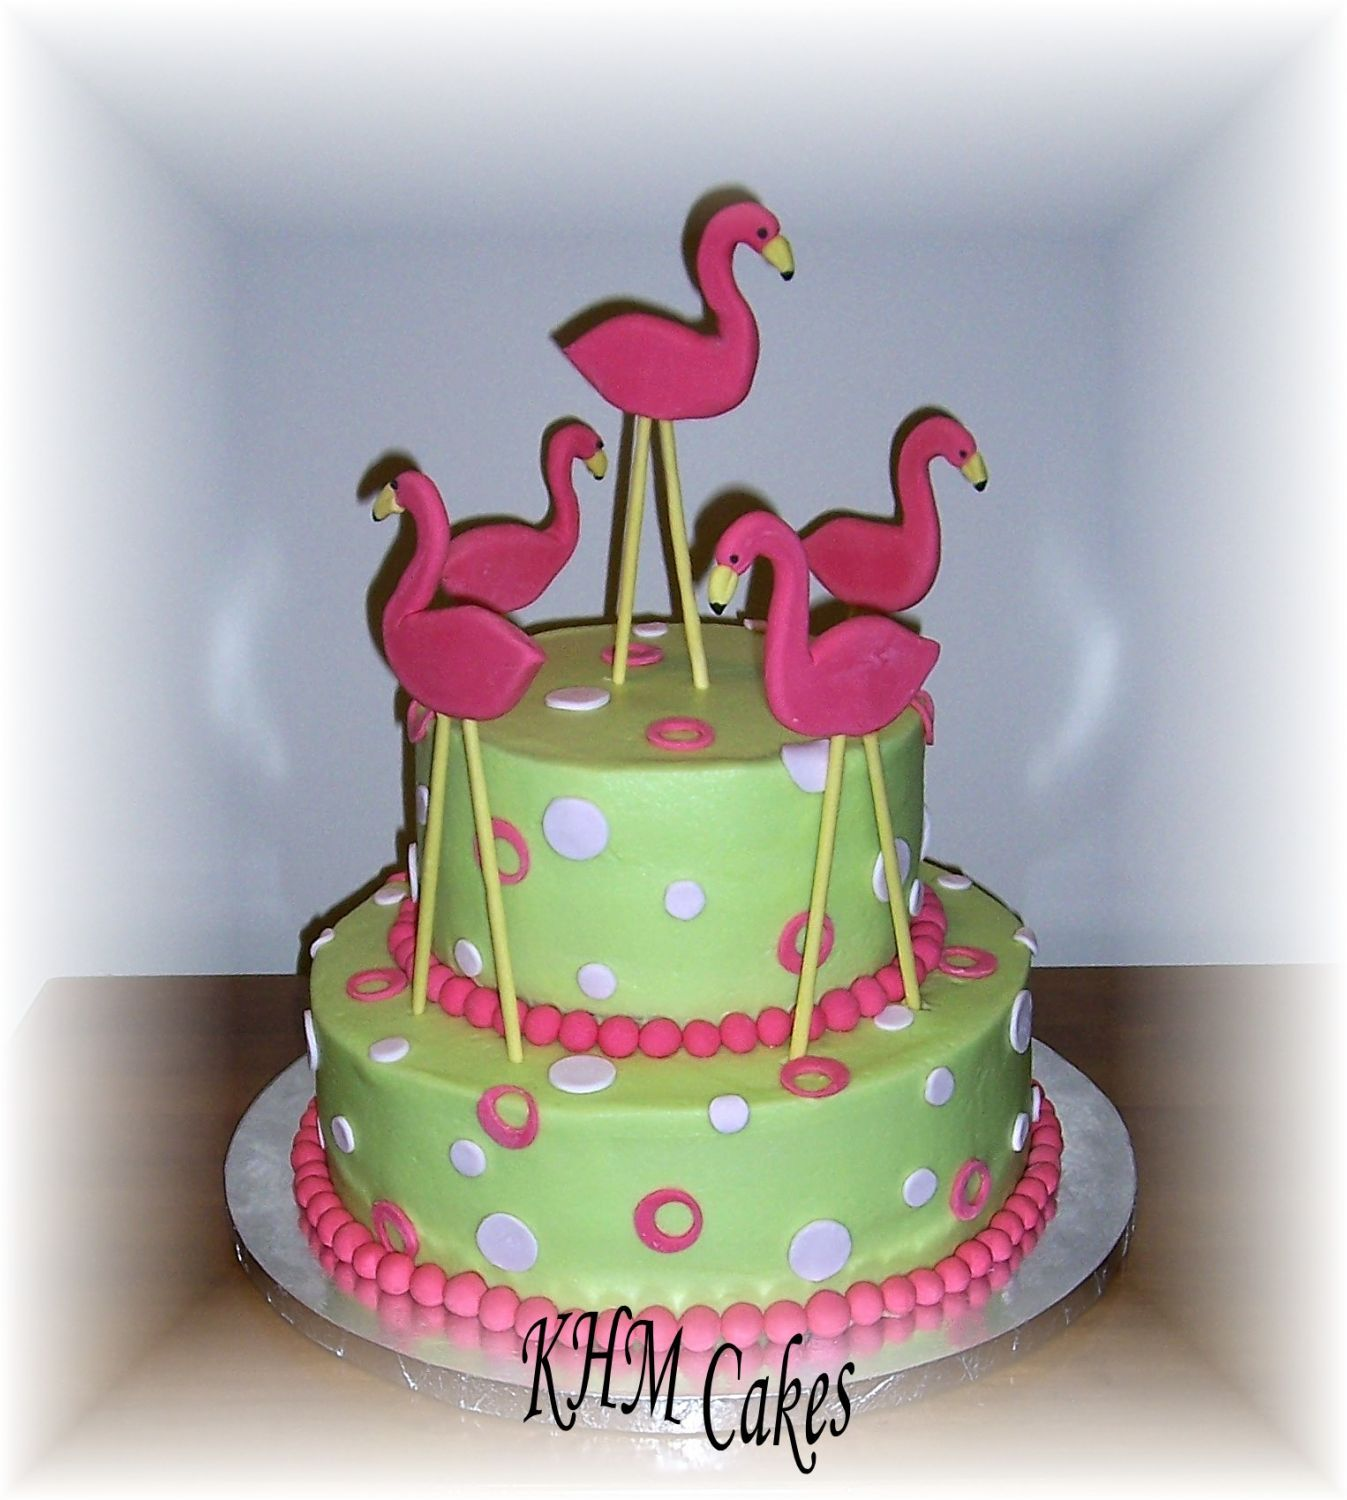 Google themes marble - Flamingo 50th Birthday Cake 2 Tiered Marble Cake With Chocolate Buttercream Filling Iced In